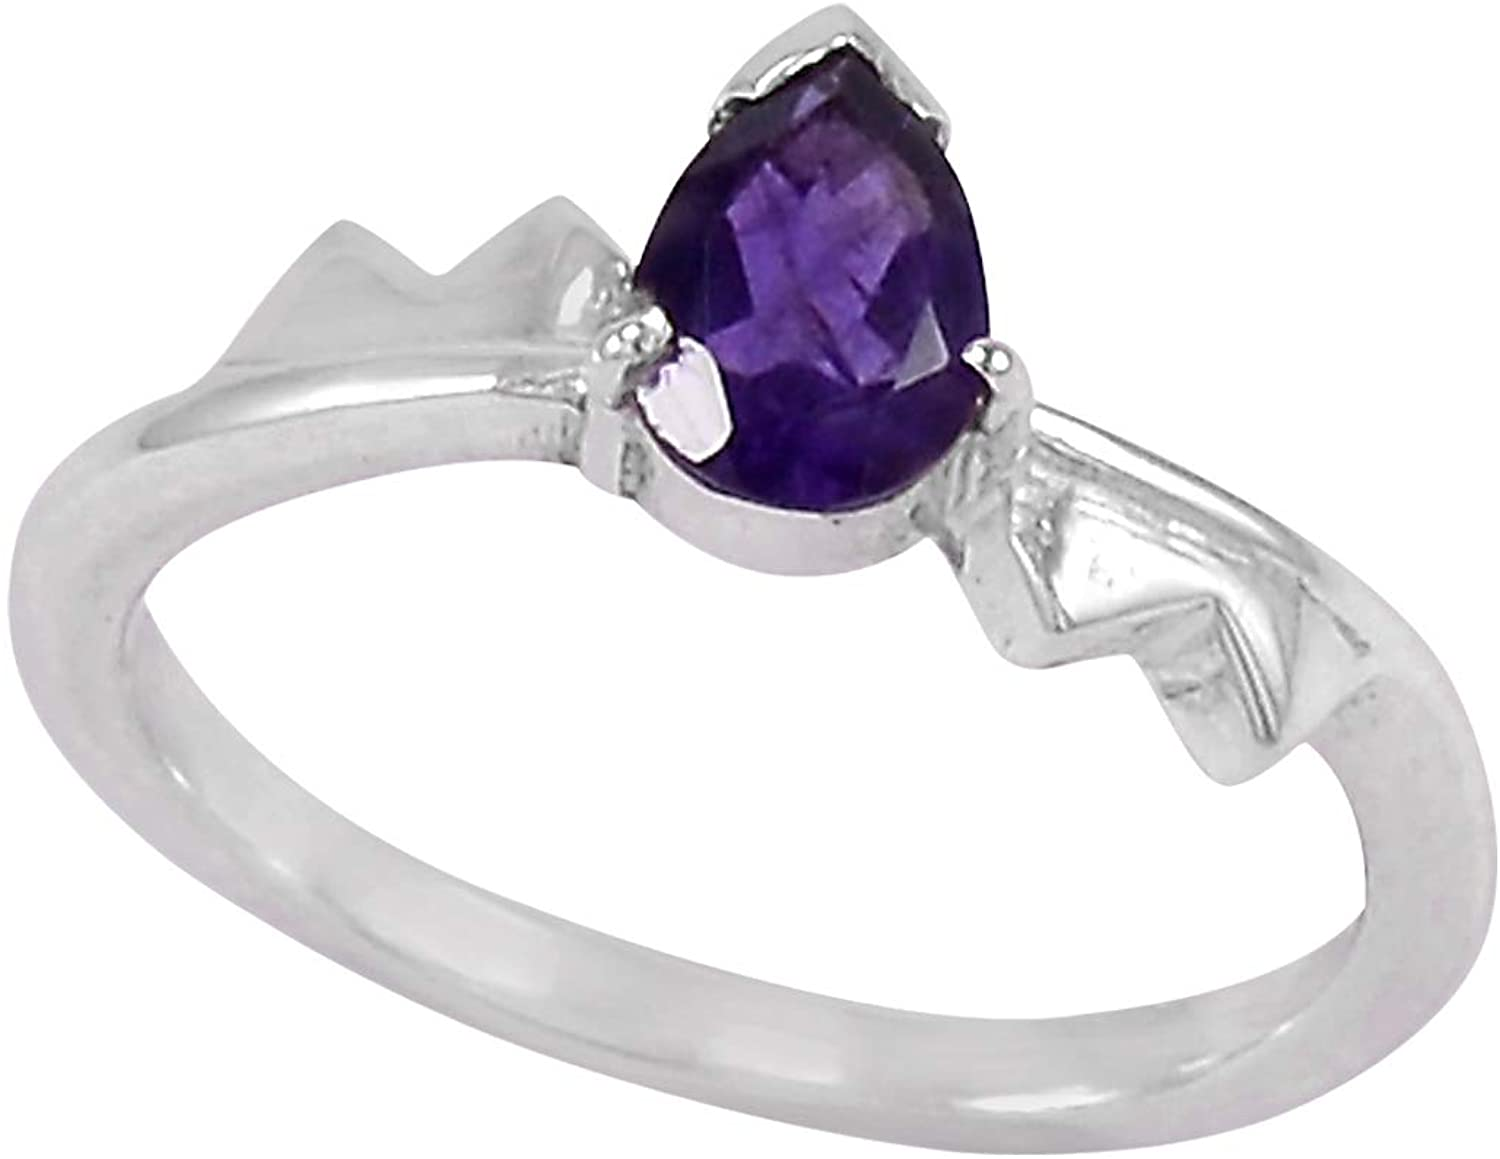 February Birthstone Amethyst Handmade Jewelry Manufacturer 925 Sterling Silver Jaipur Rajasthan India Solitaire New Ring